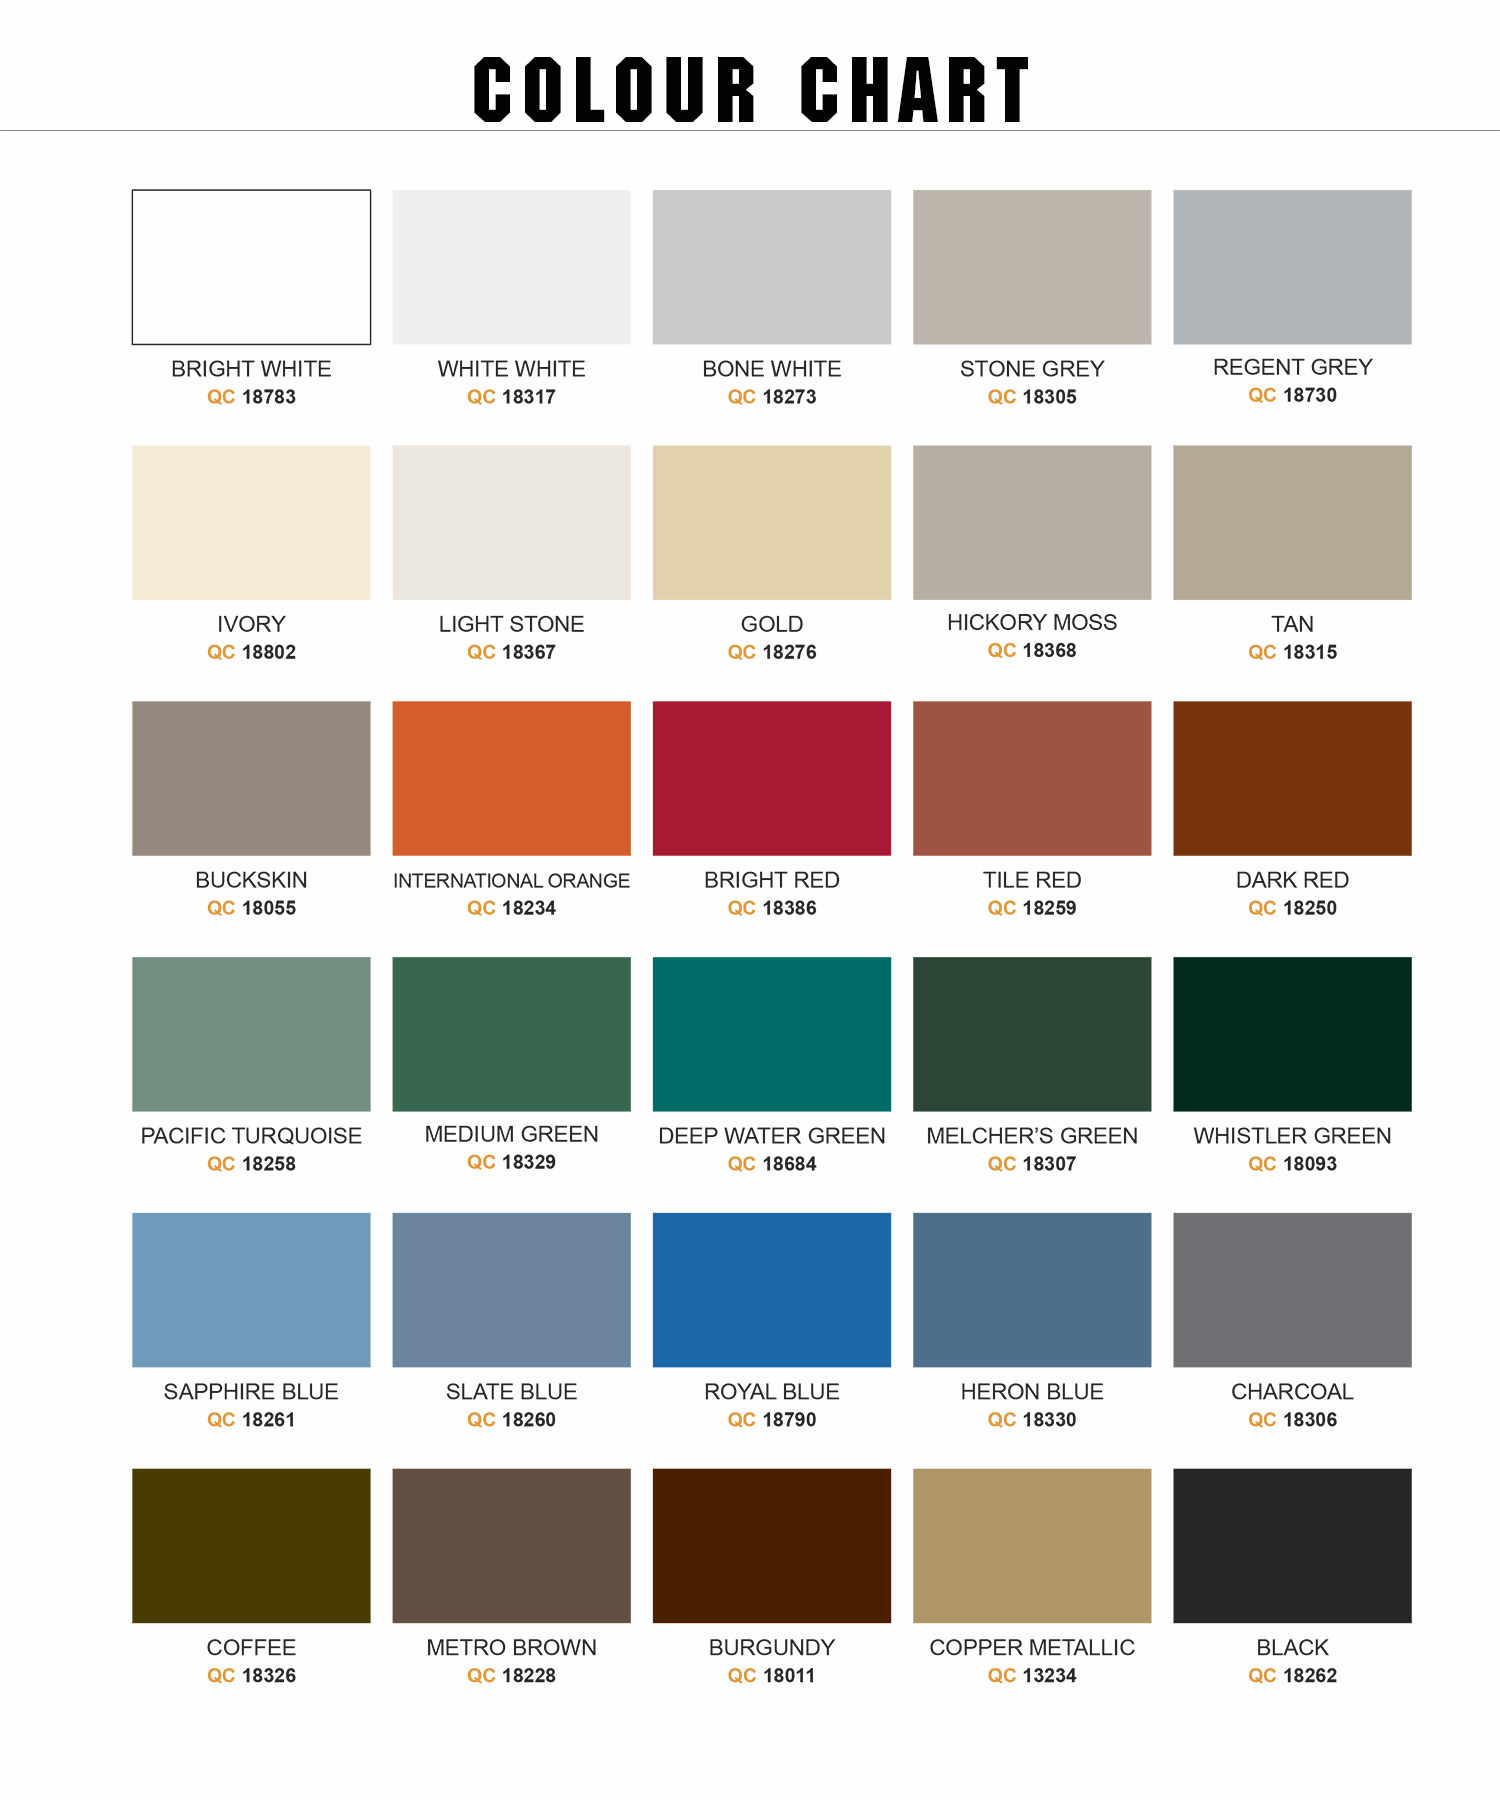 Econospan structures corp manufacturers of steel buildings colourchart geenschuldenfo Image collections